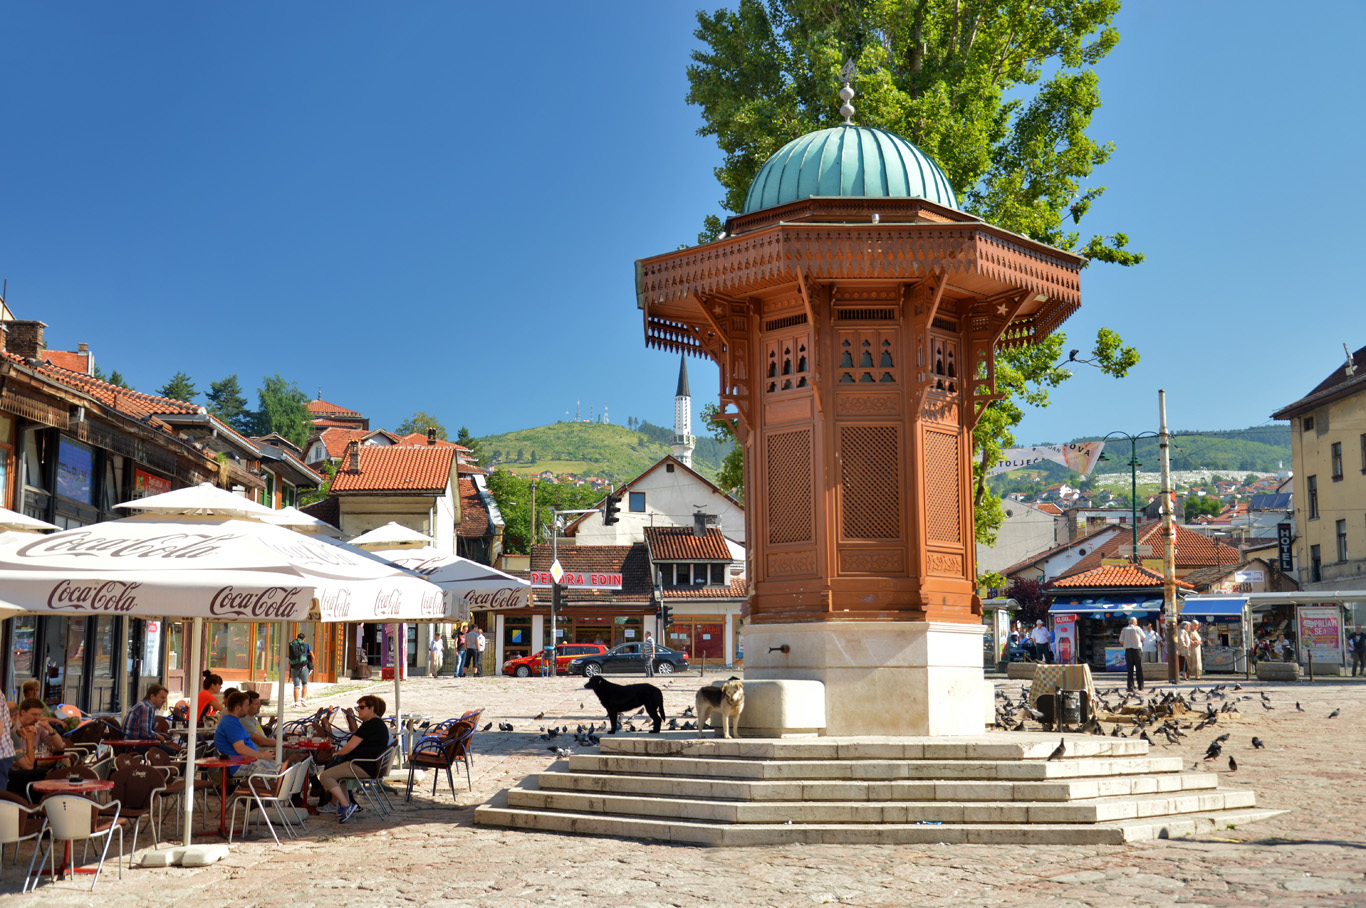 Sebijl - The Ottoman style fountain at the 'pigeon' square